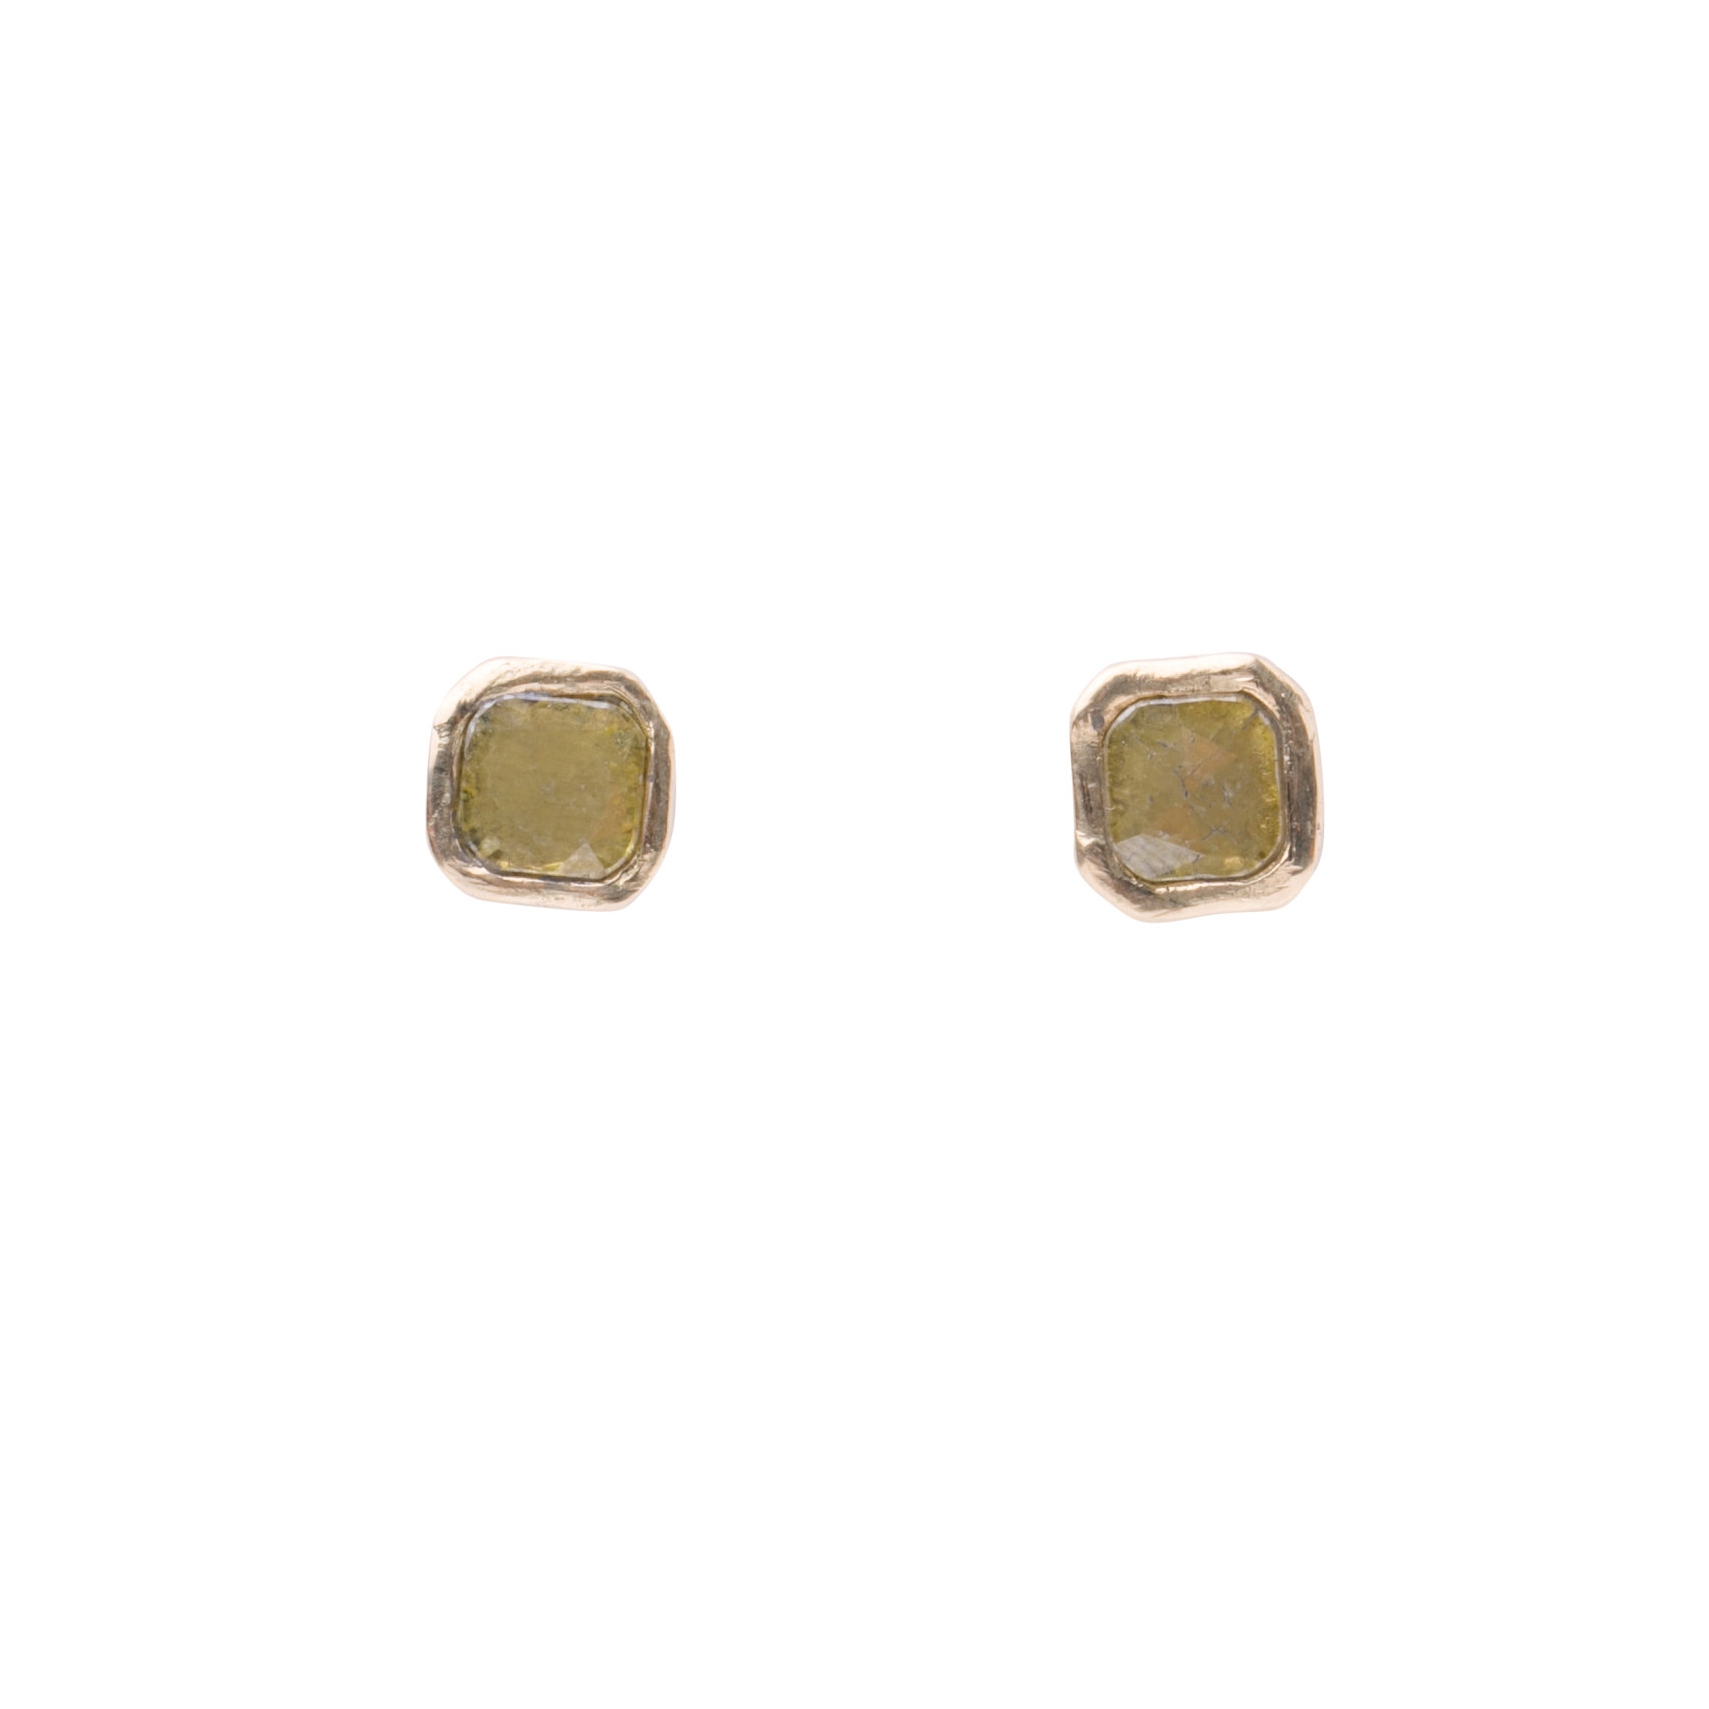 Earrings_stud-001.JPG